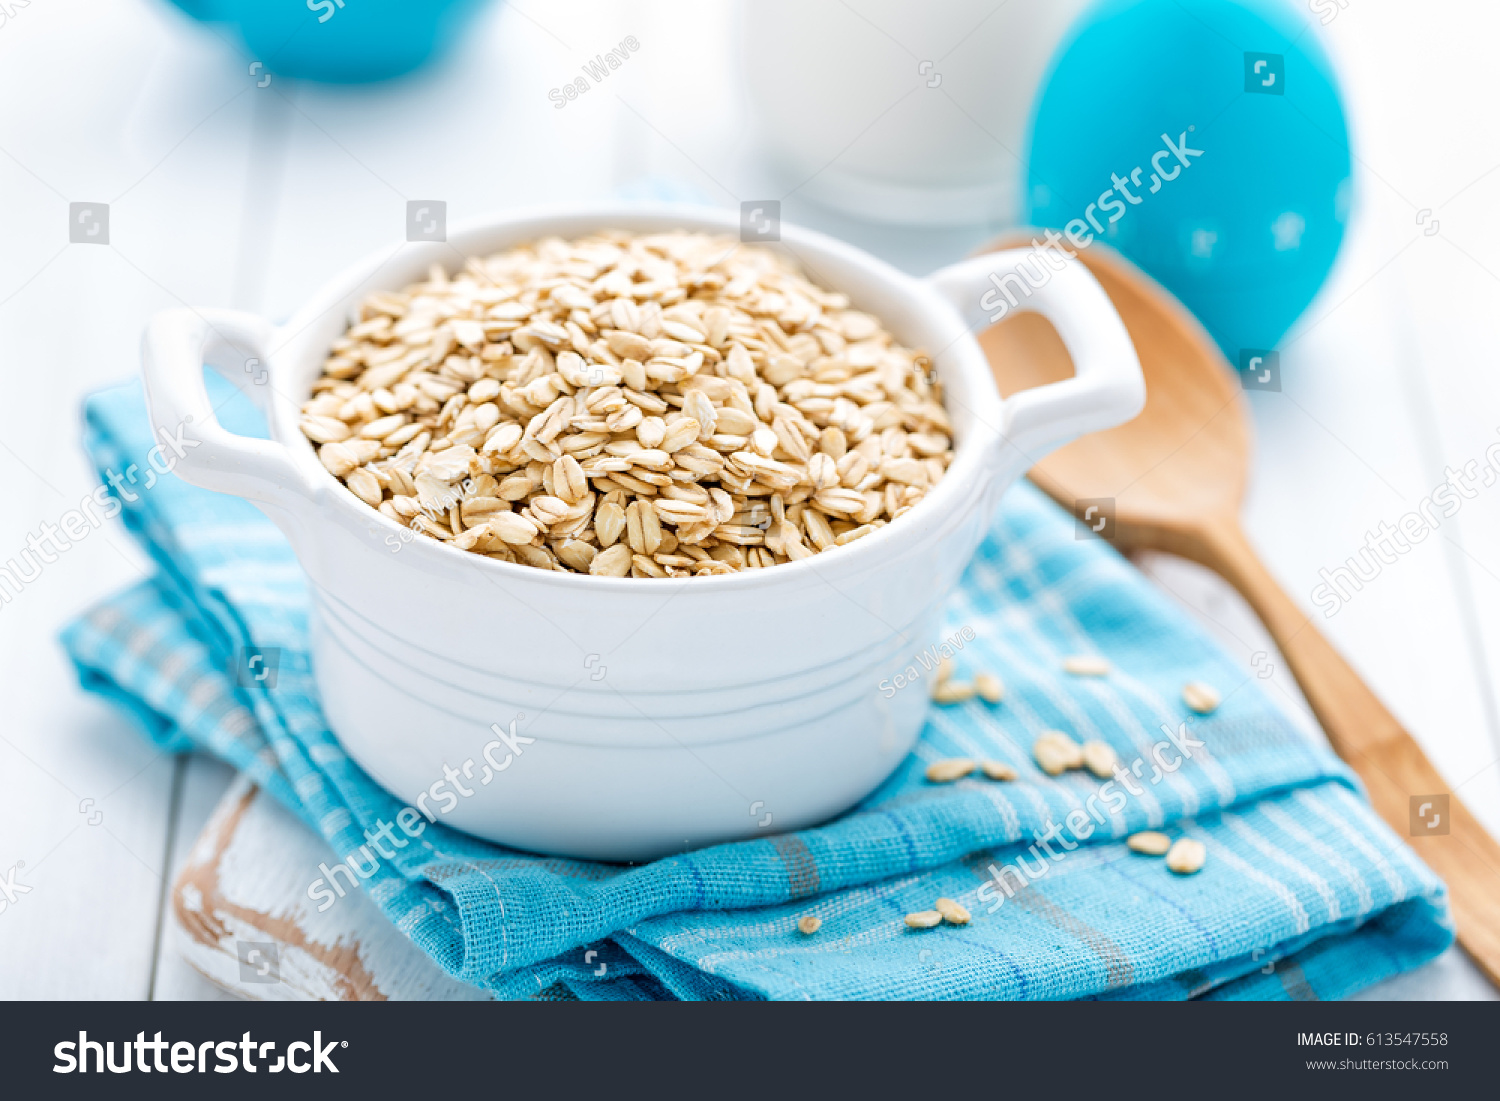 Rolled oats on white wooden background #613547558